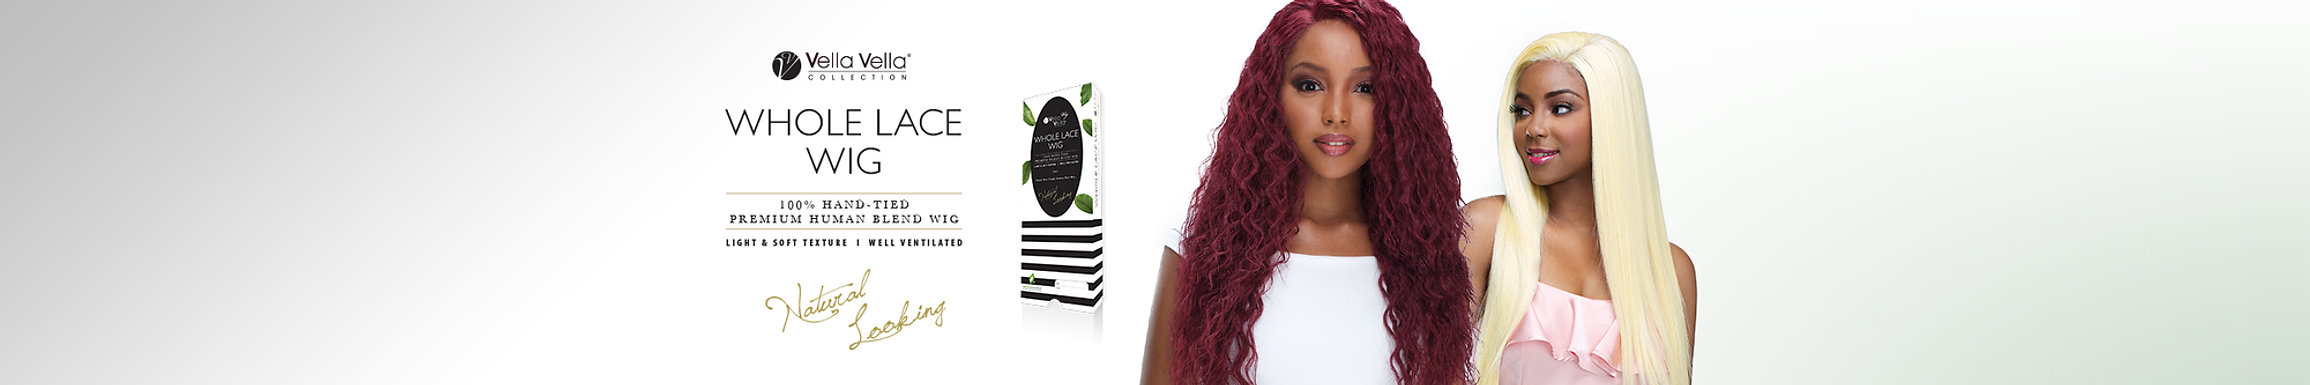 WHOLE-LACE-WIG_BLEND.jpg